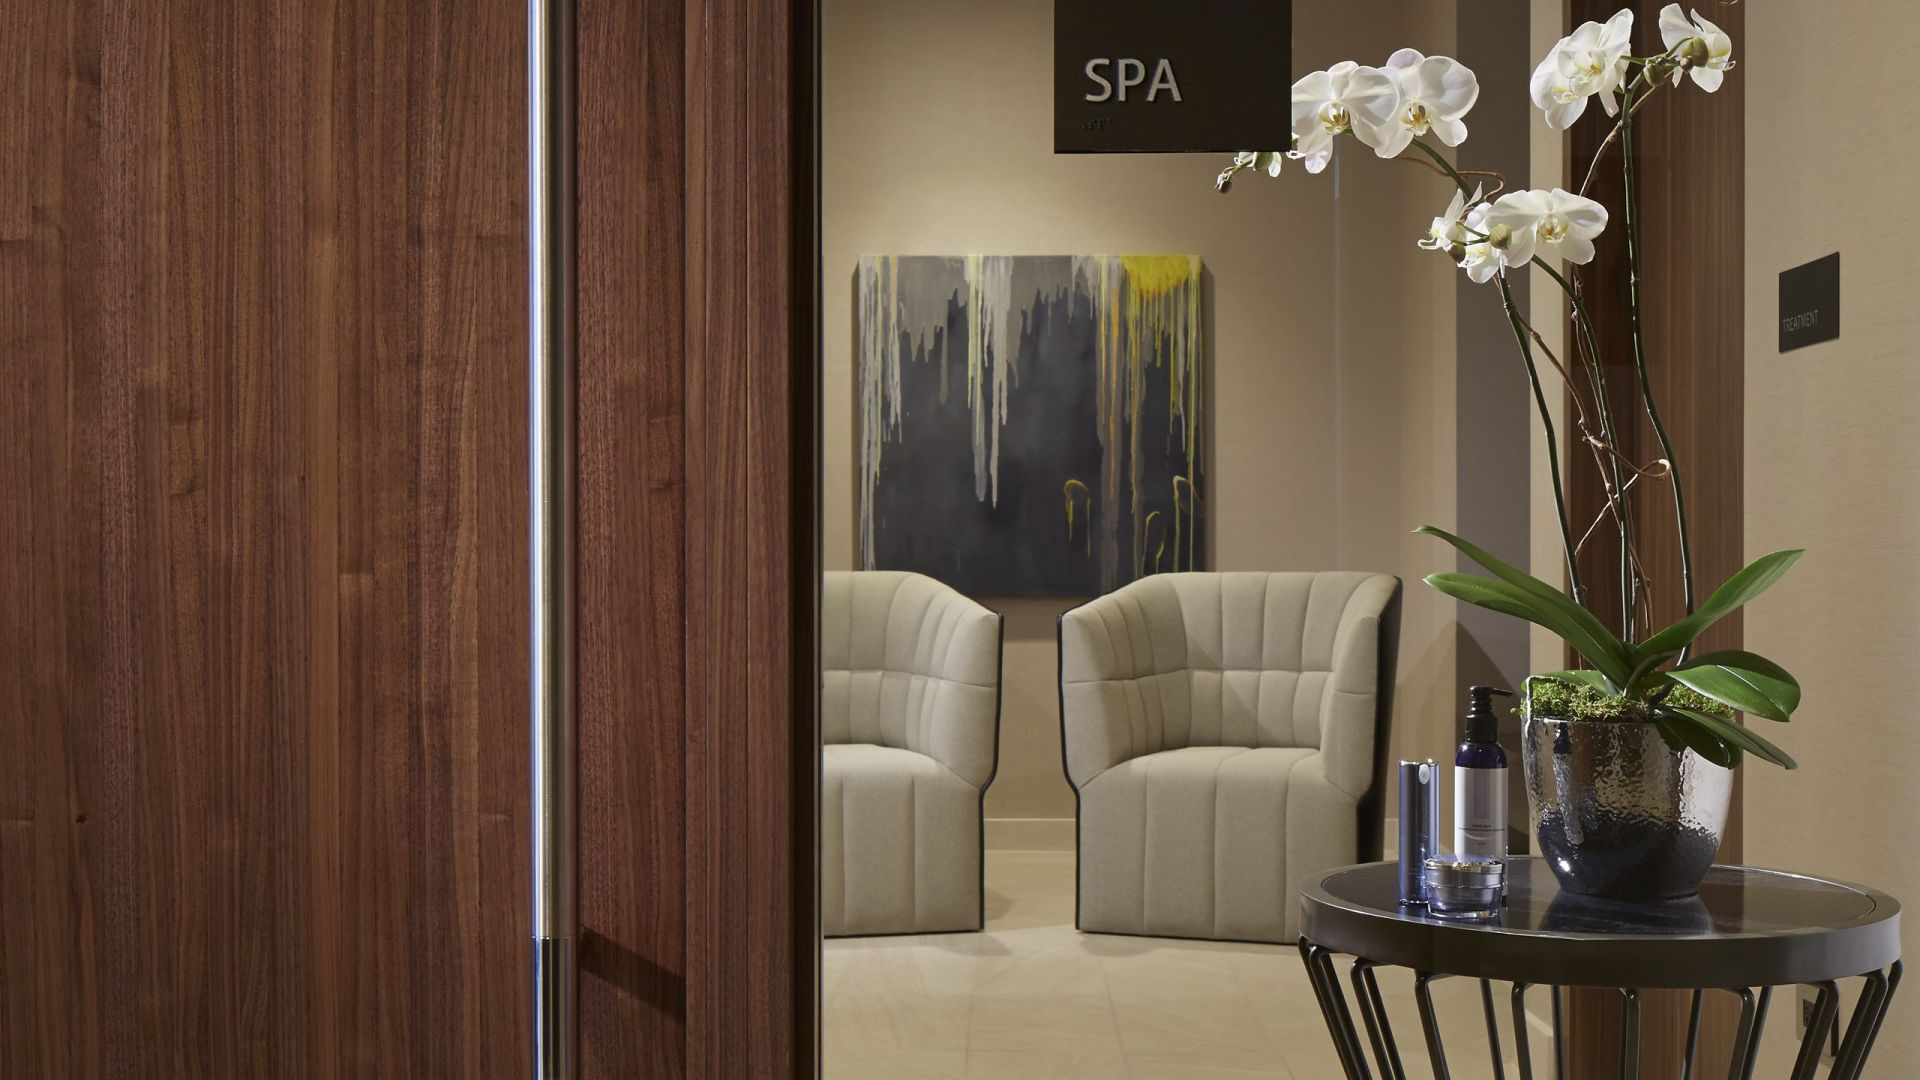 Spa at Loews Chicago Entrance